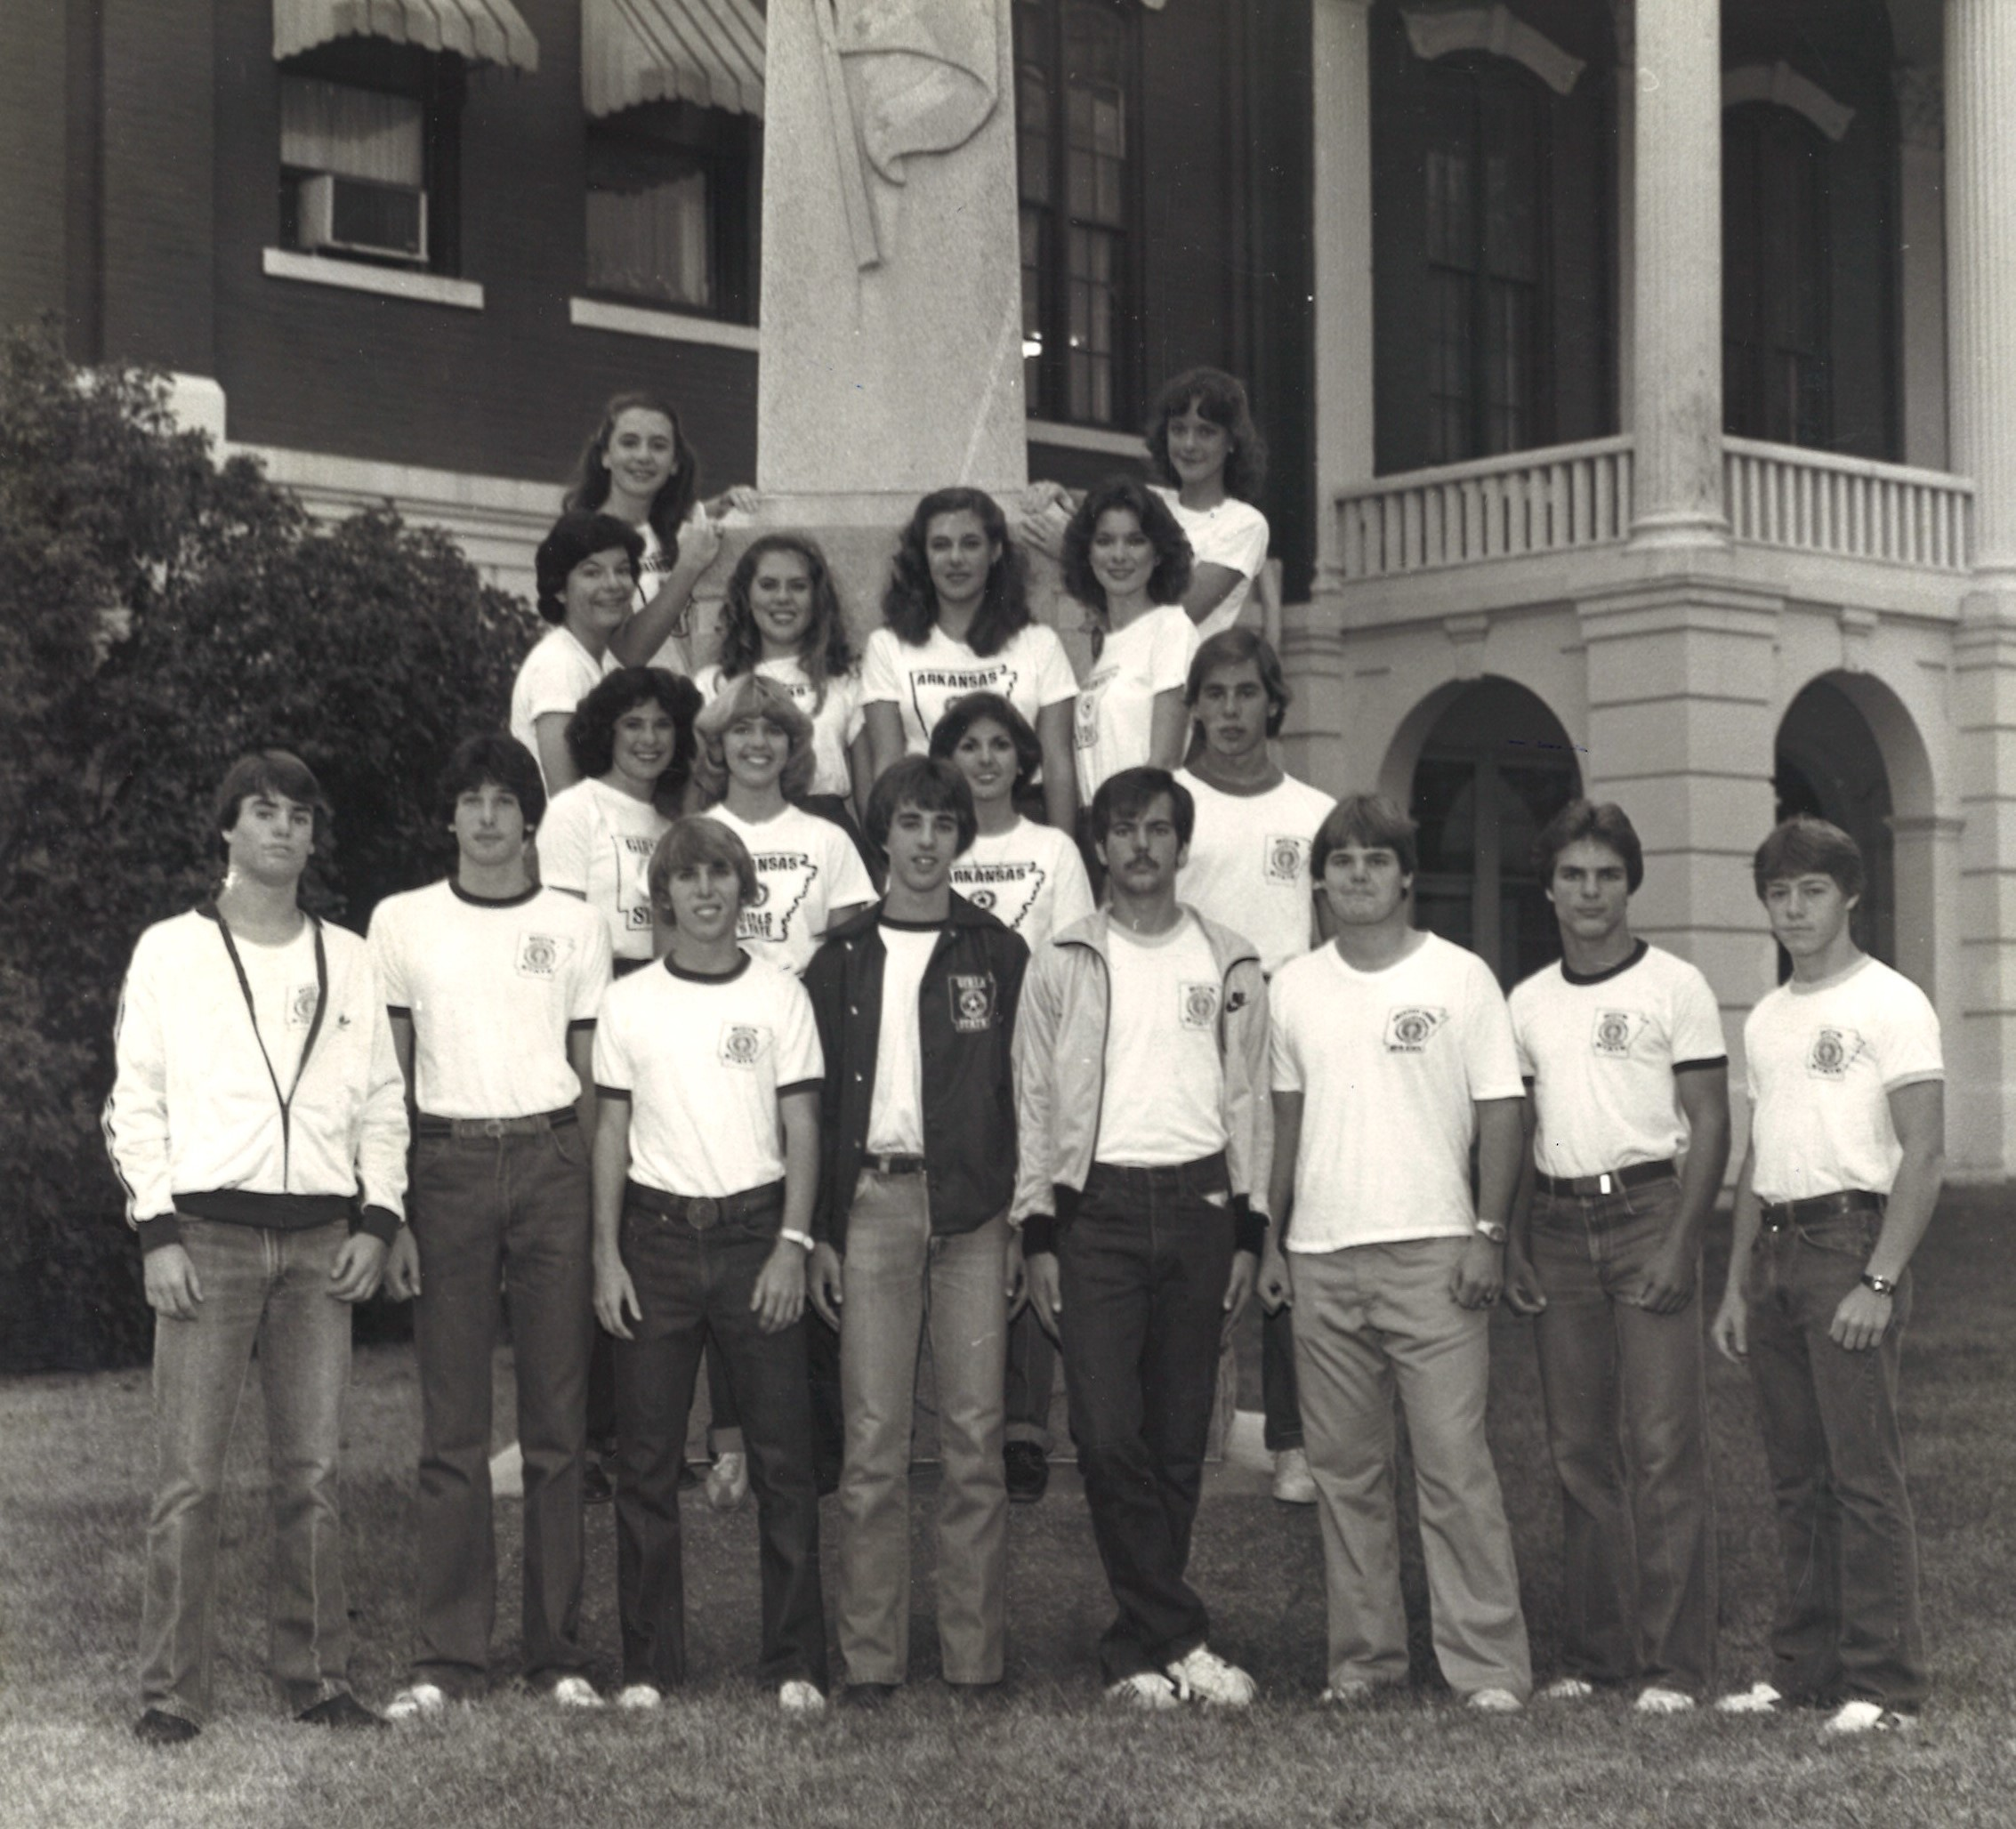 Boys Girls state Searcy AR 1980's